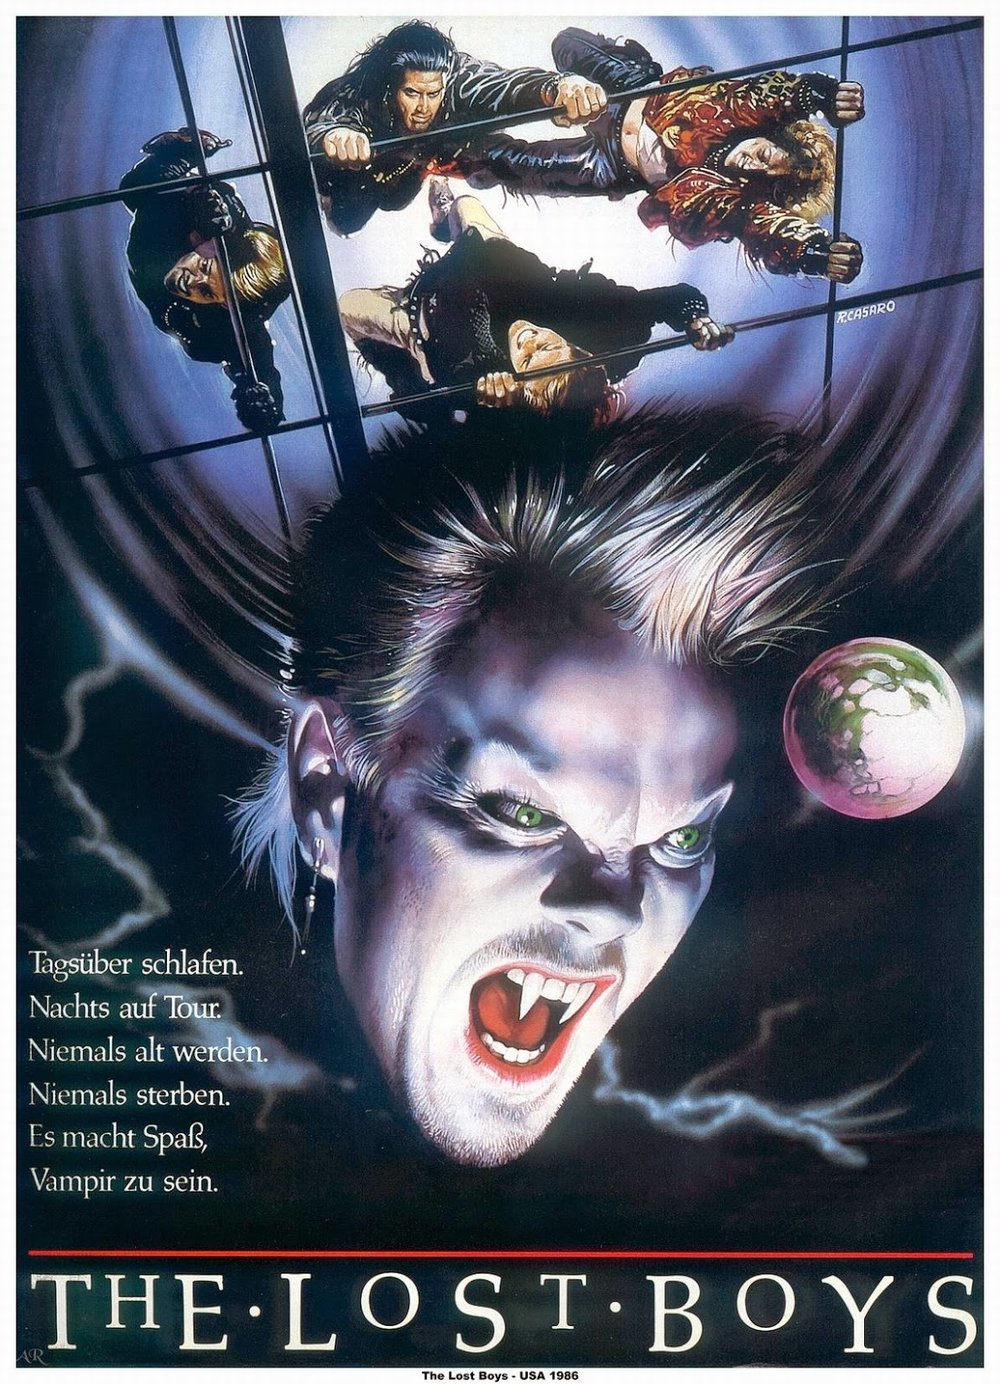 THE LOST BOYS (1987) poster 3.jpg